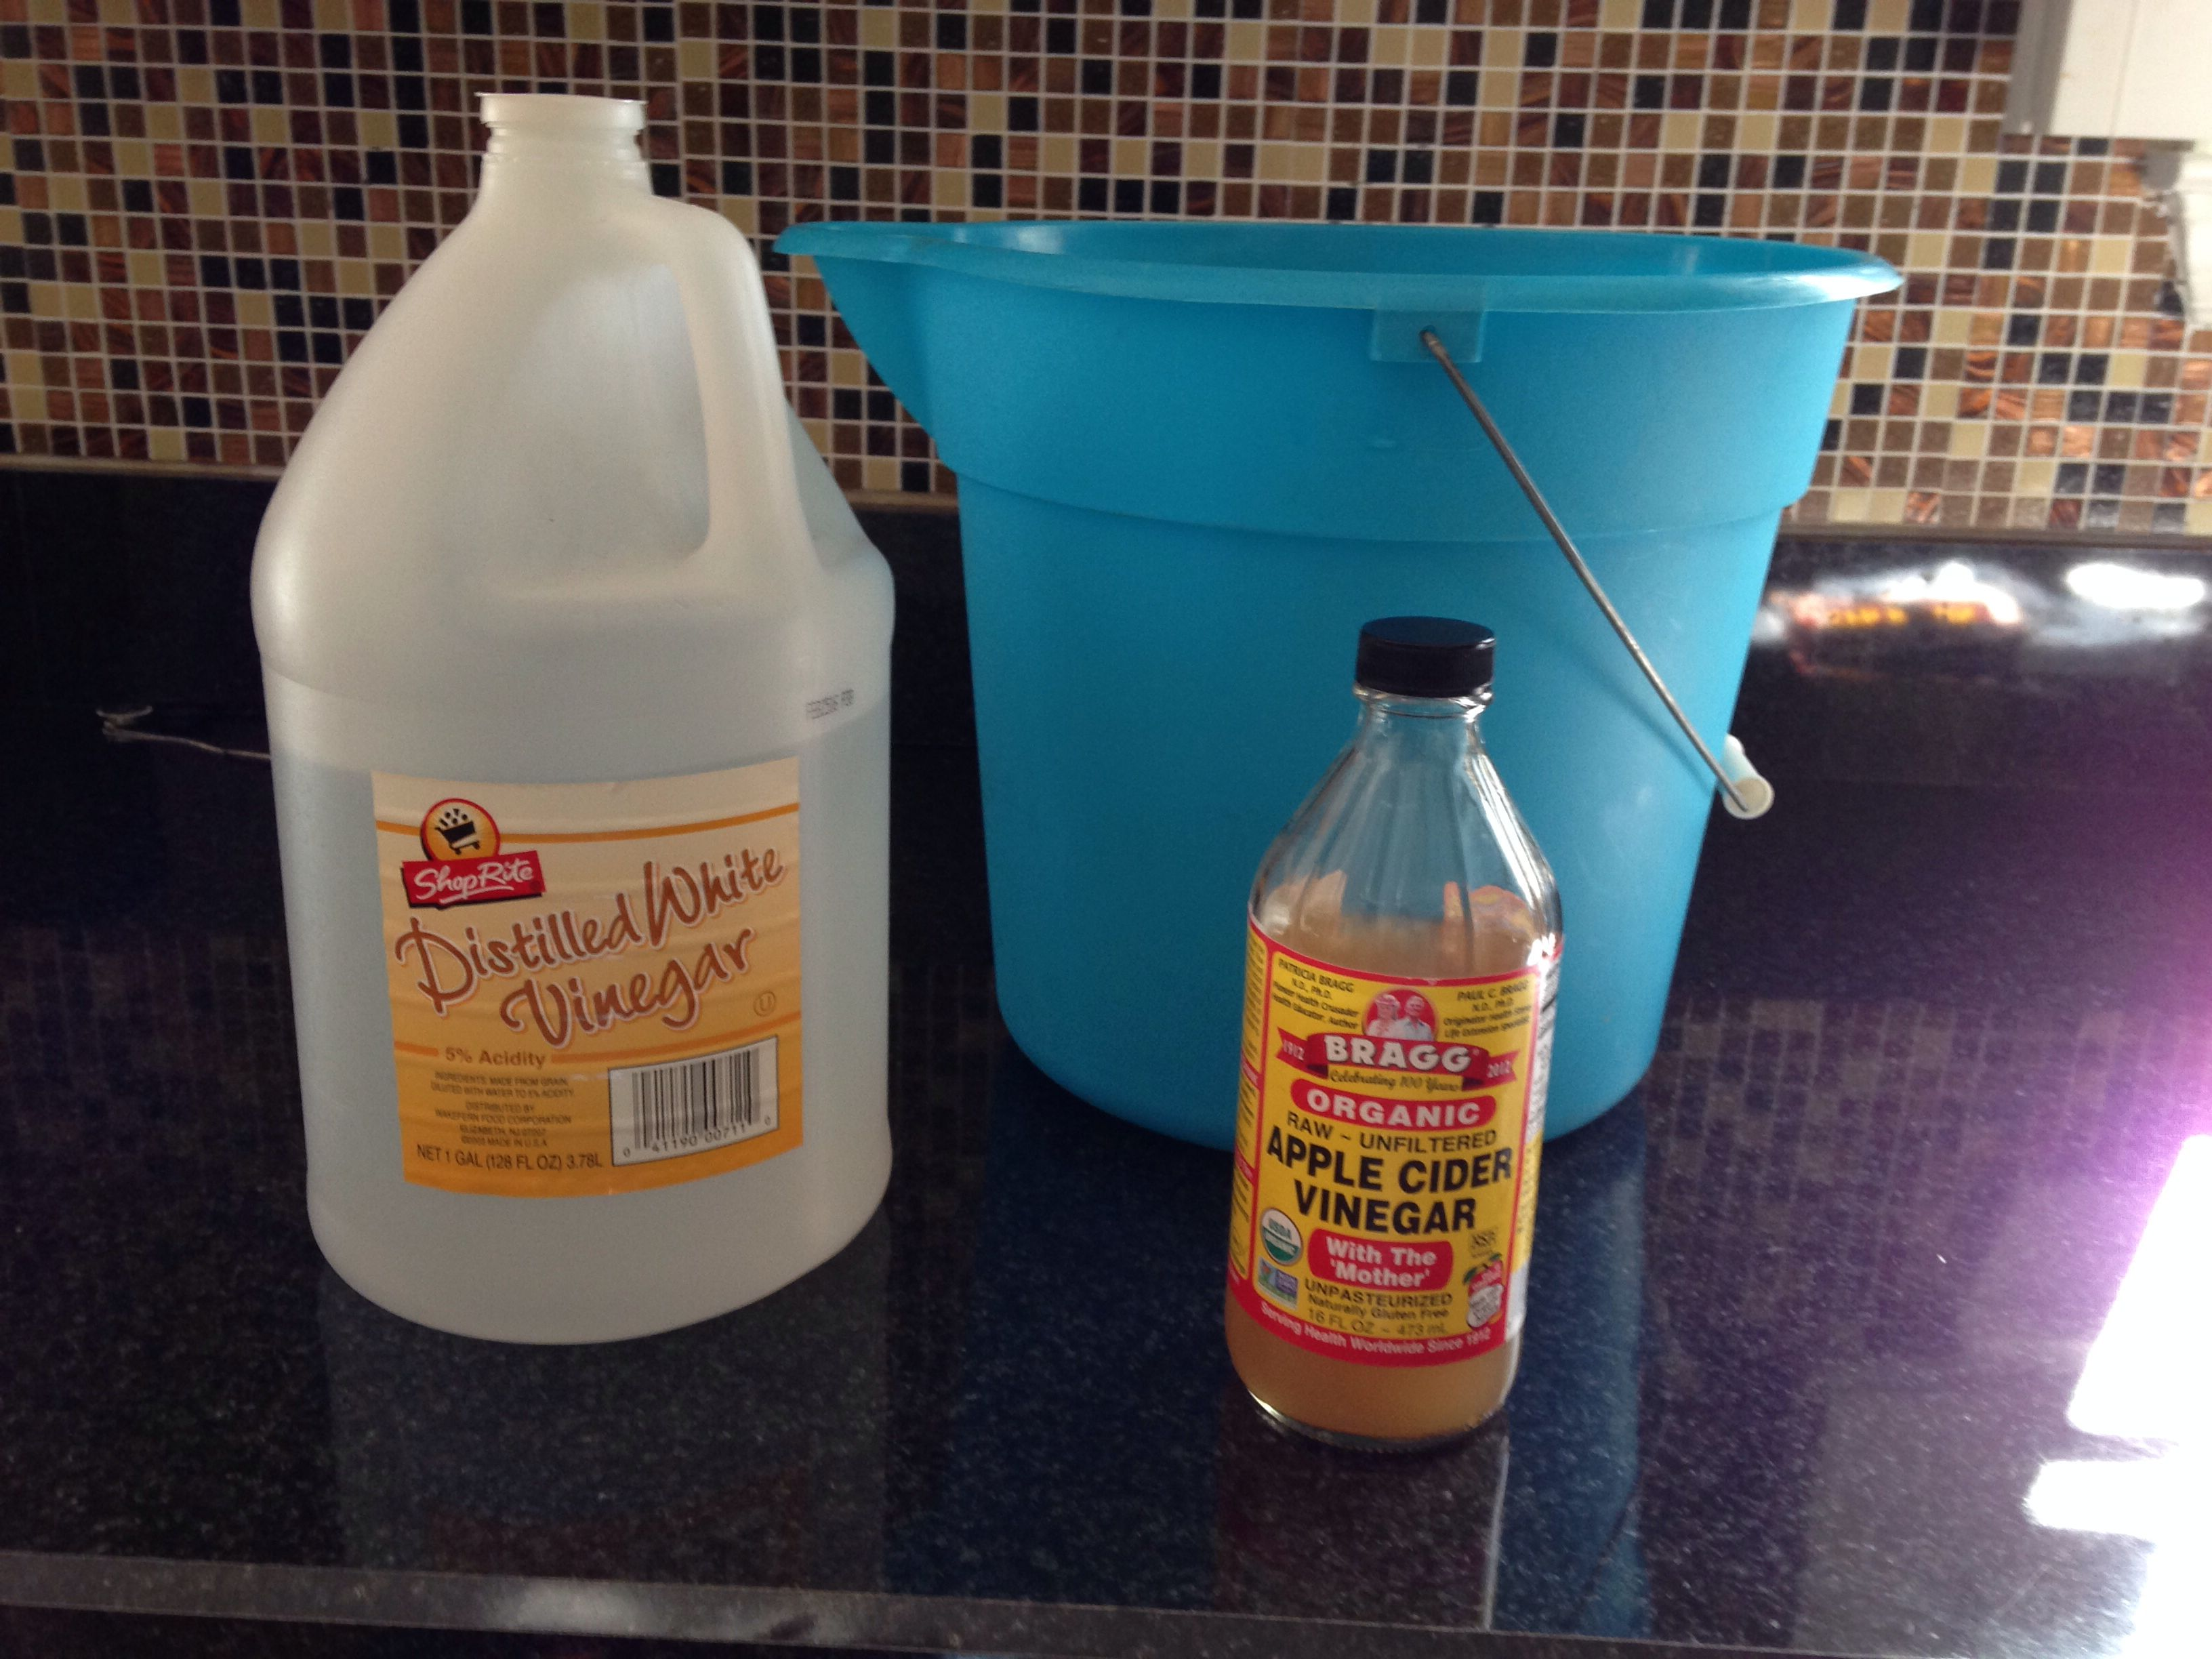 Clean your wood or laminate floors. 1/4 cup distilled